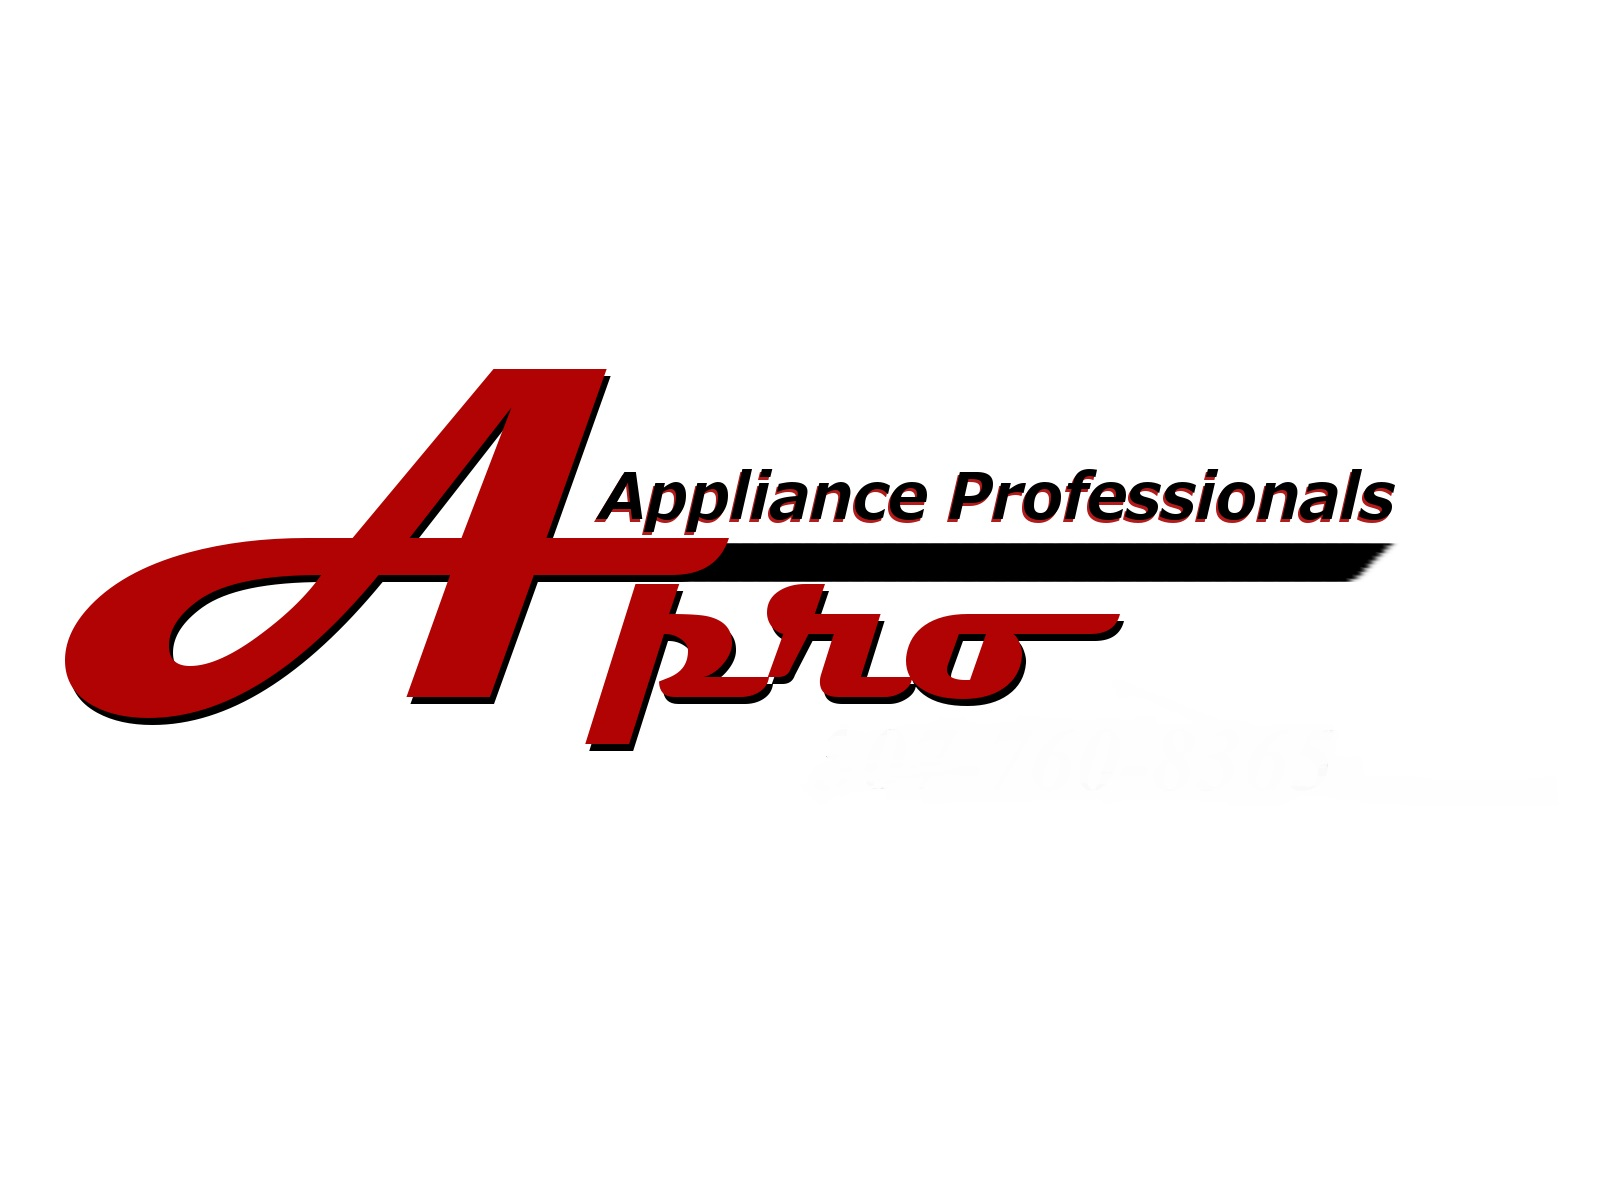 Appliance Professionals of Laramie